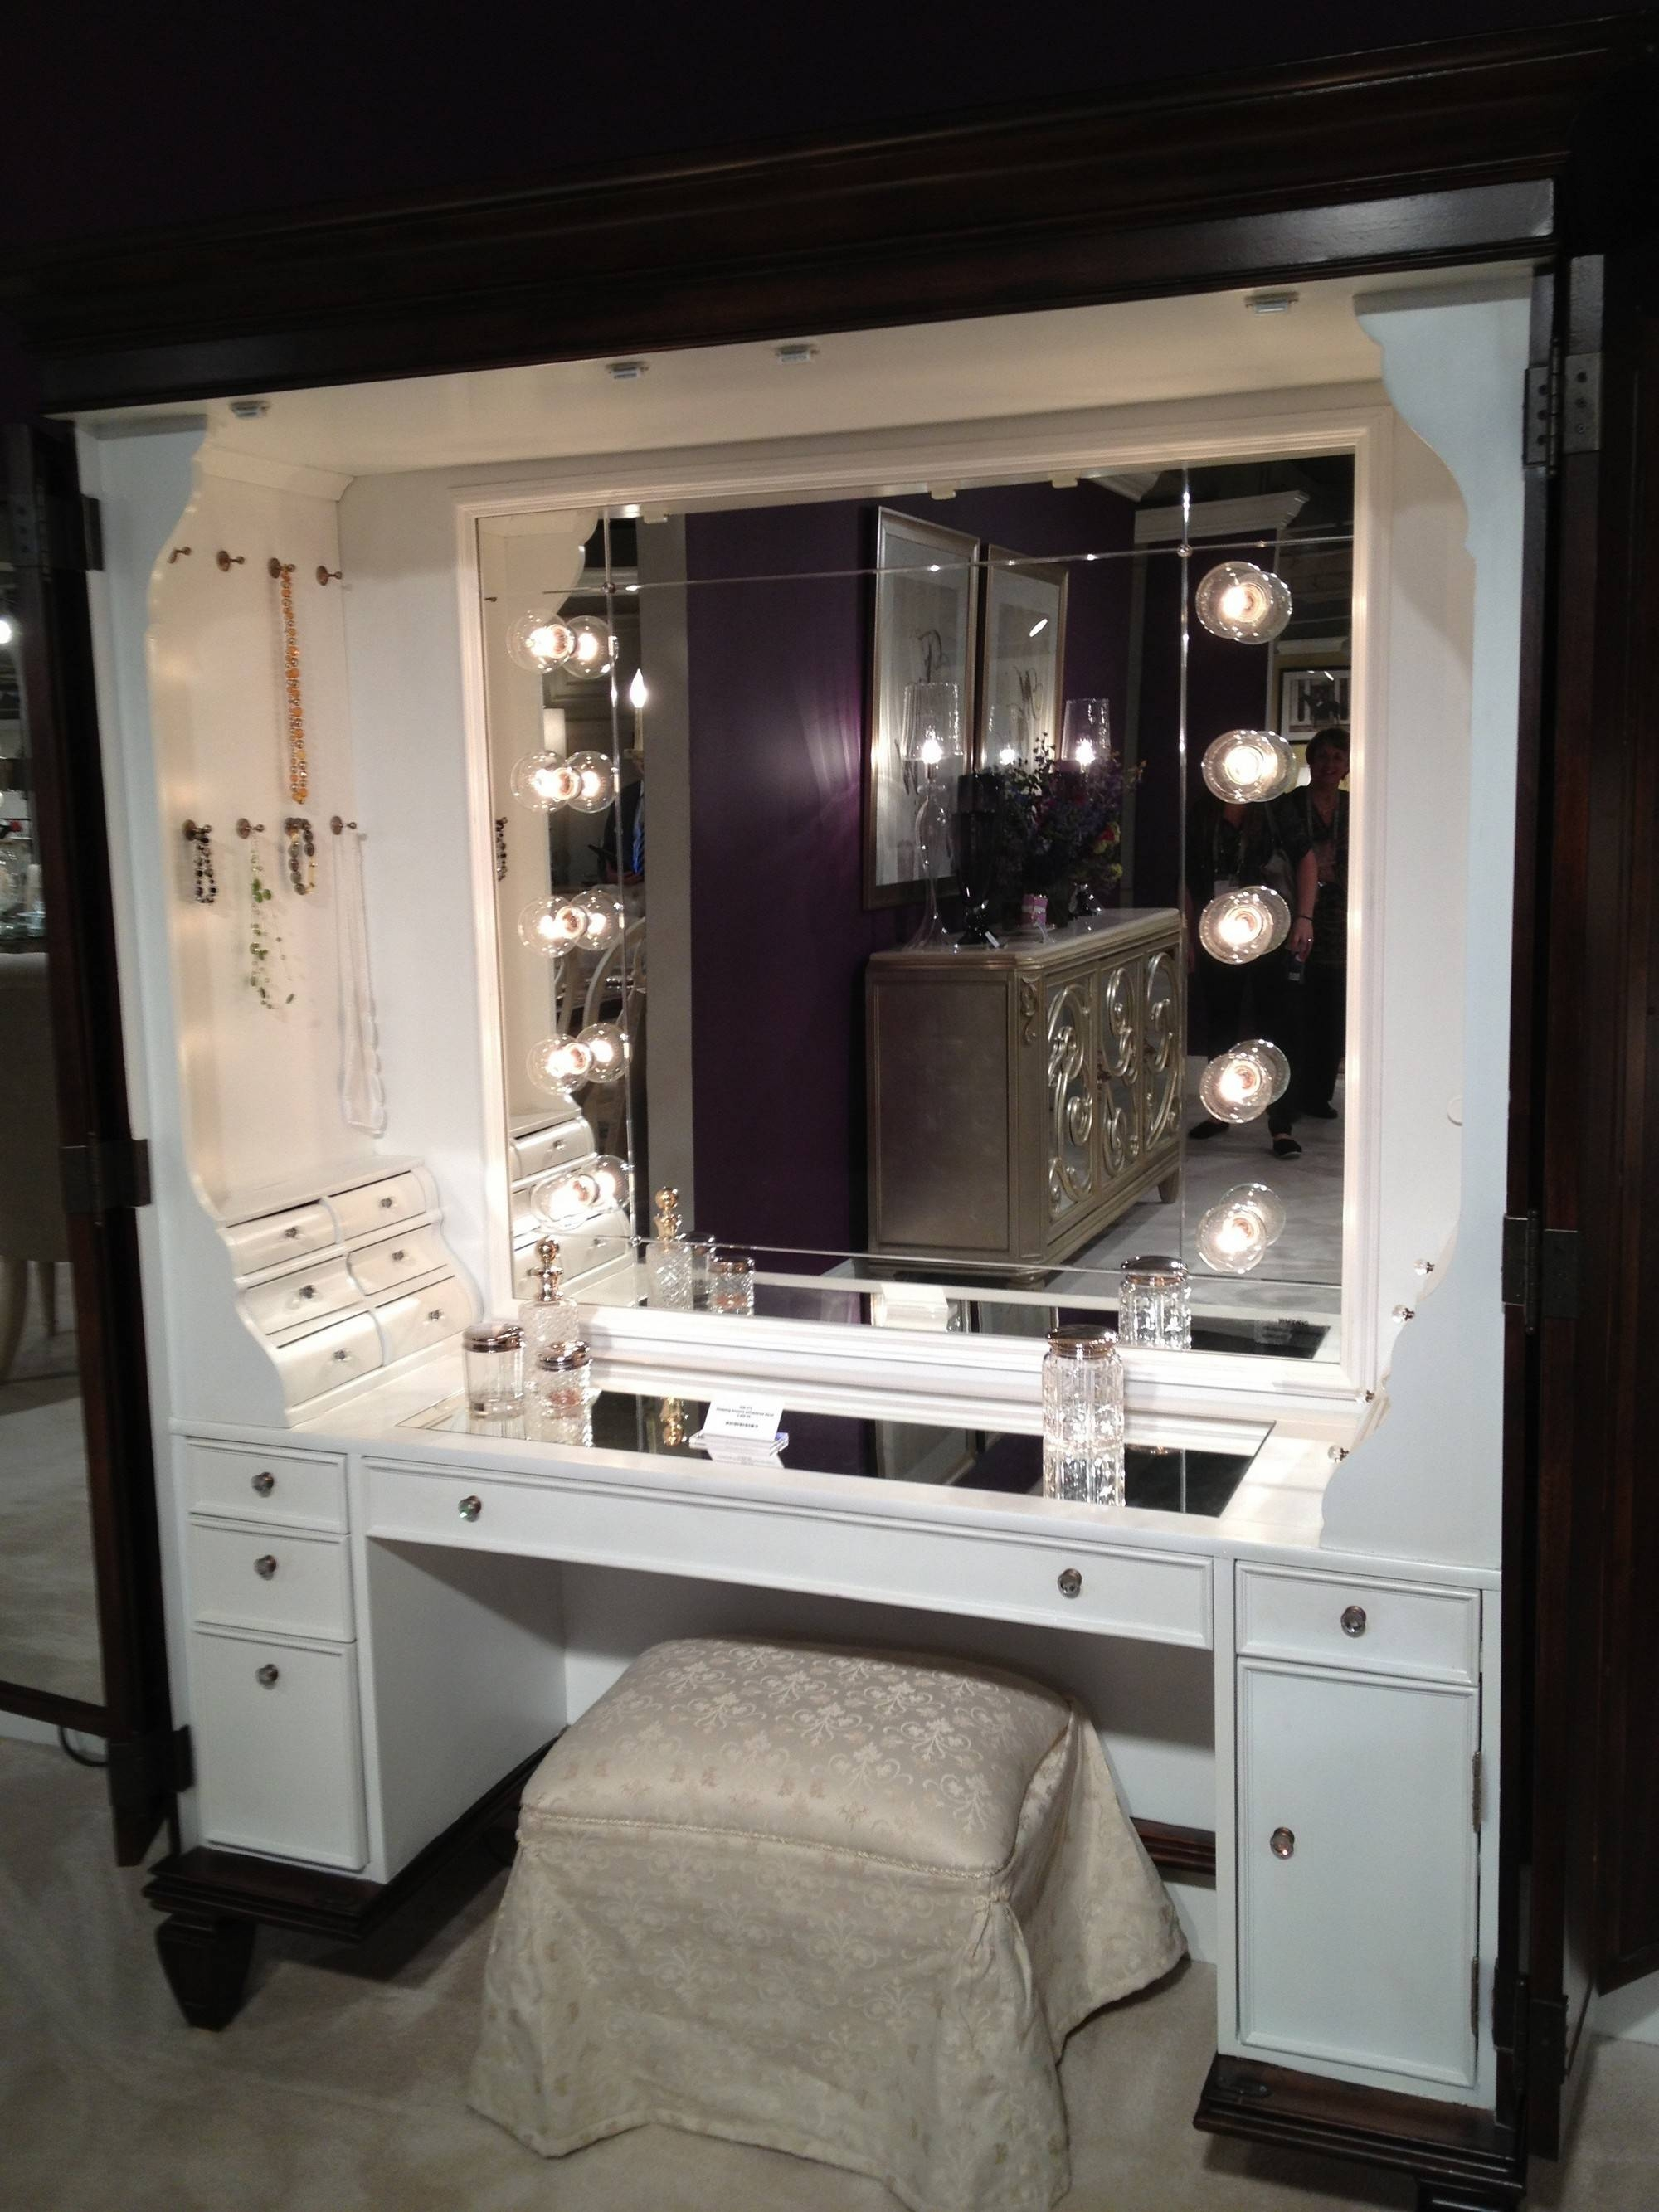 Decorations : Decorations Outstanding Square Mirrors With Light for Illuminated Dressing Table Mirrors (Image 14 of 25)